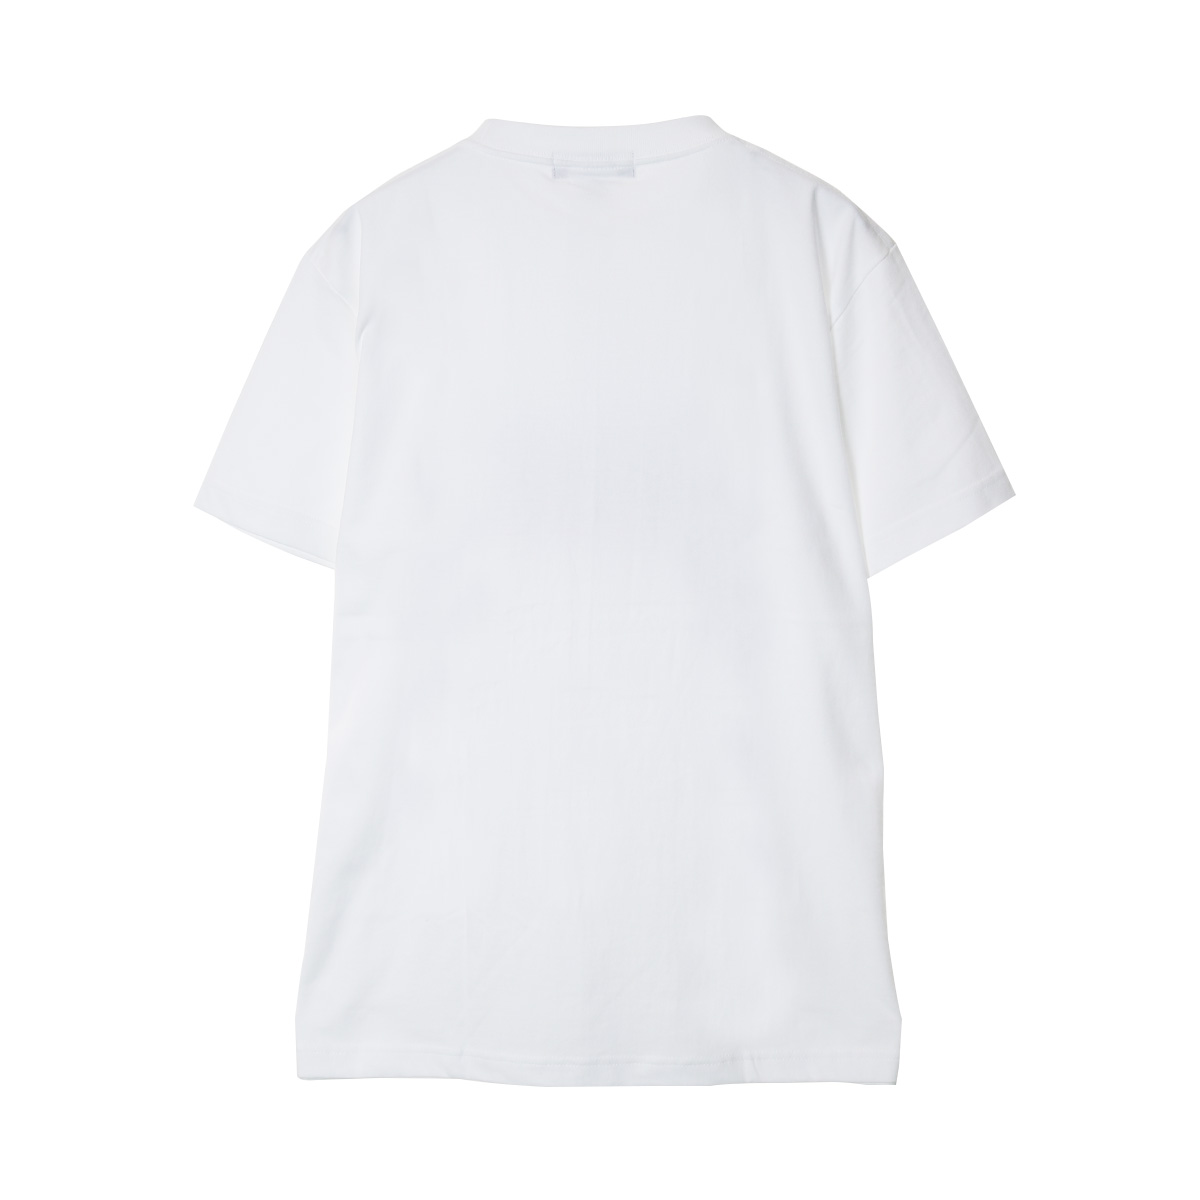 DUPLICATE COTTON T-SHIRT